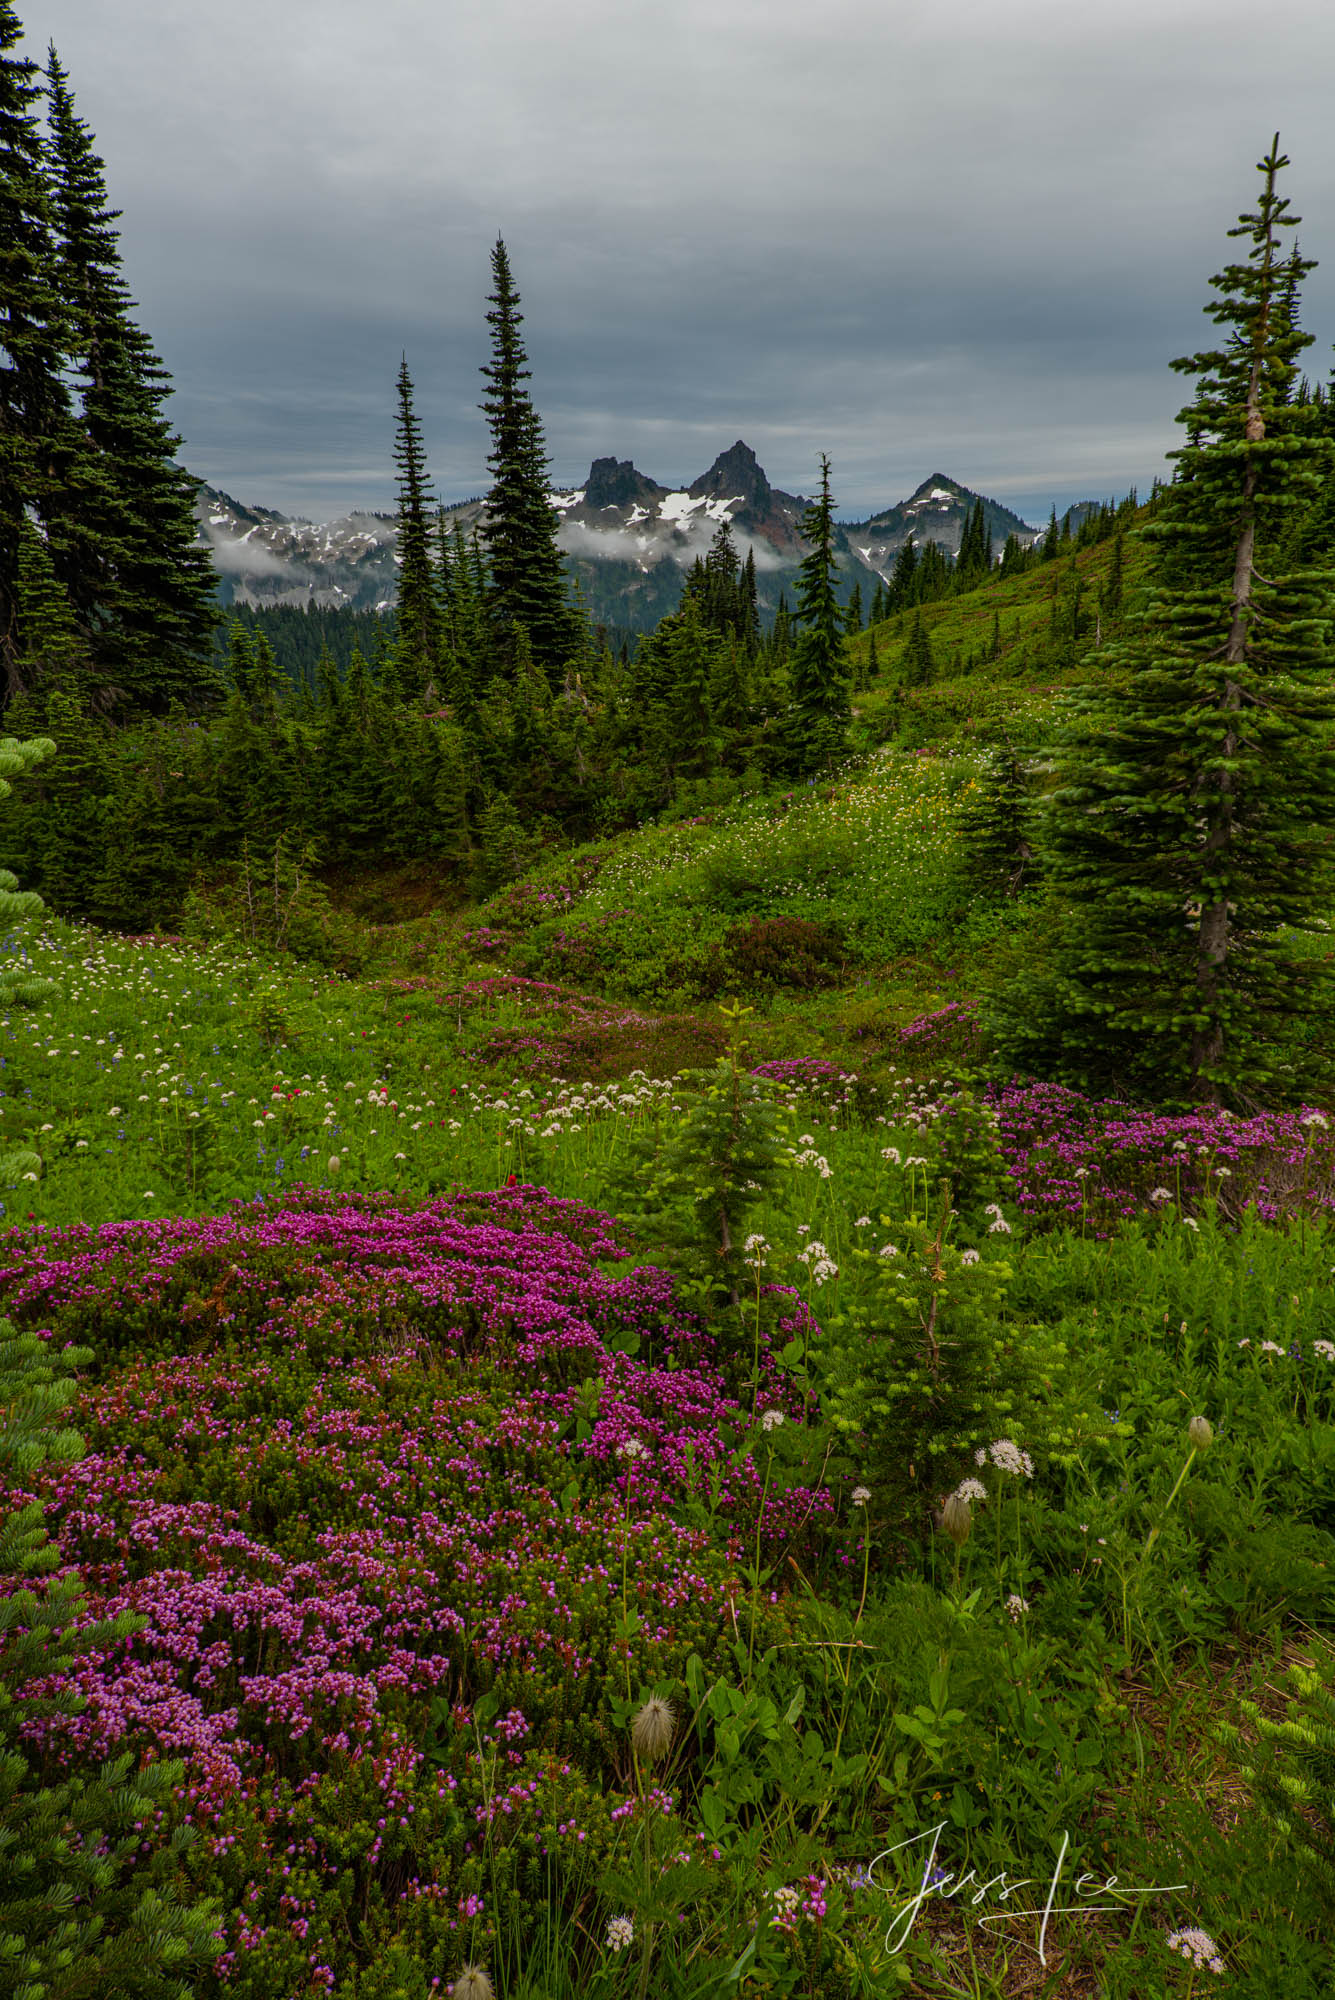 Beautify  your space  with Jess Lee's limited edition photography print, Summer High, from his Mount Rainier Gallery . Order...